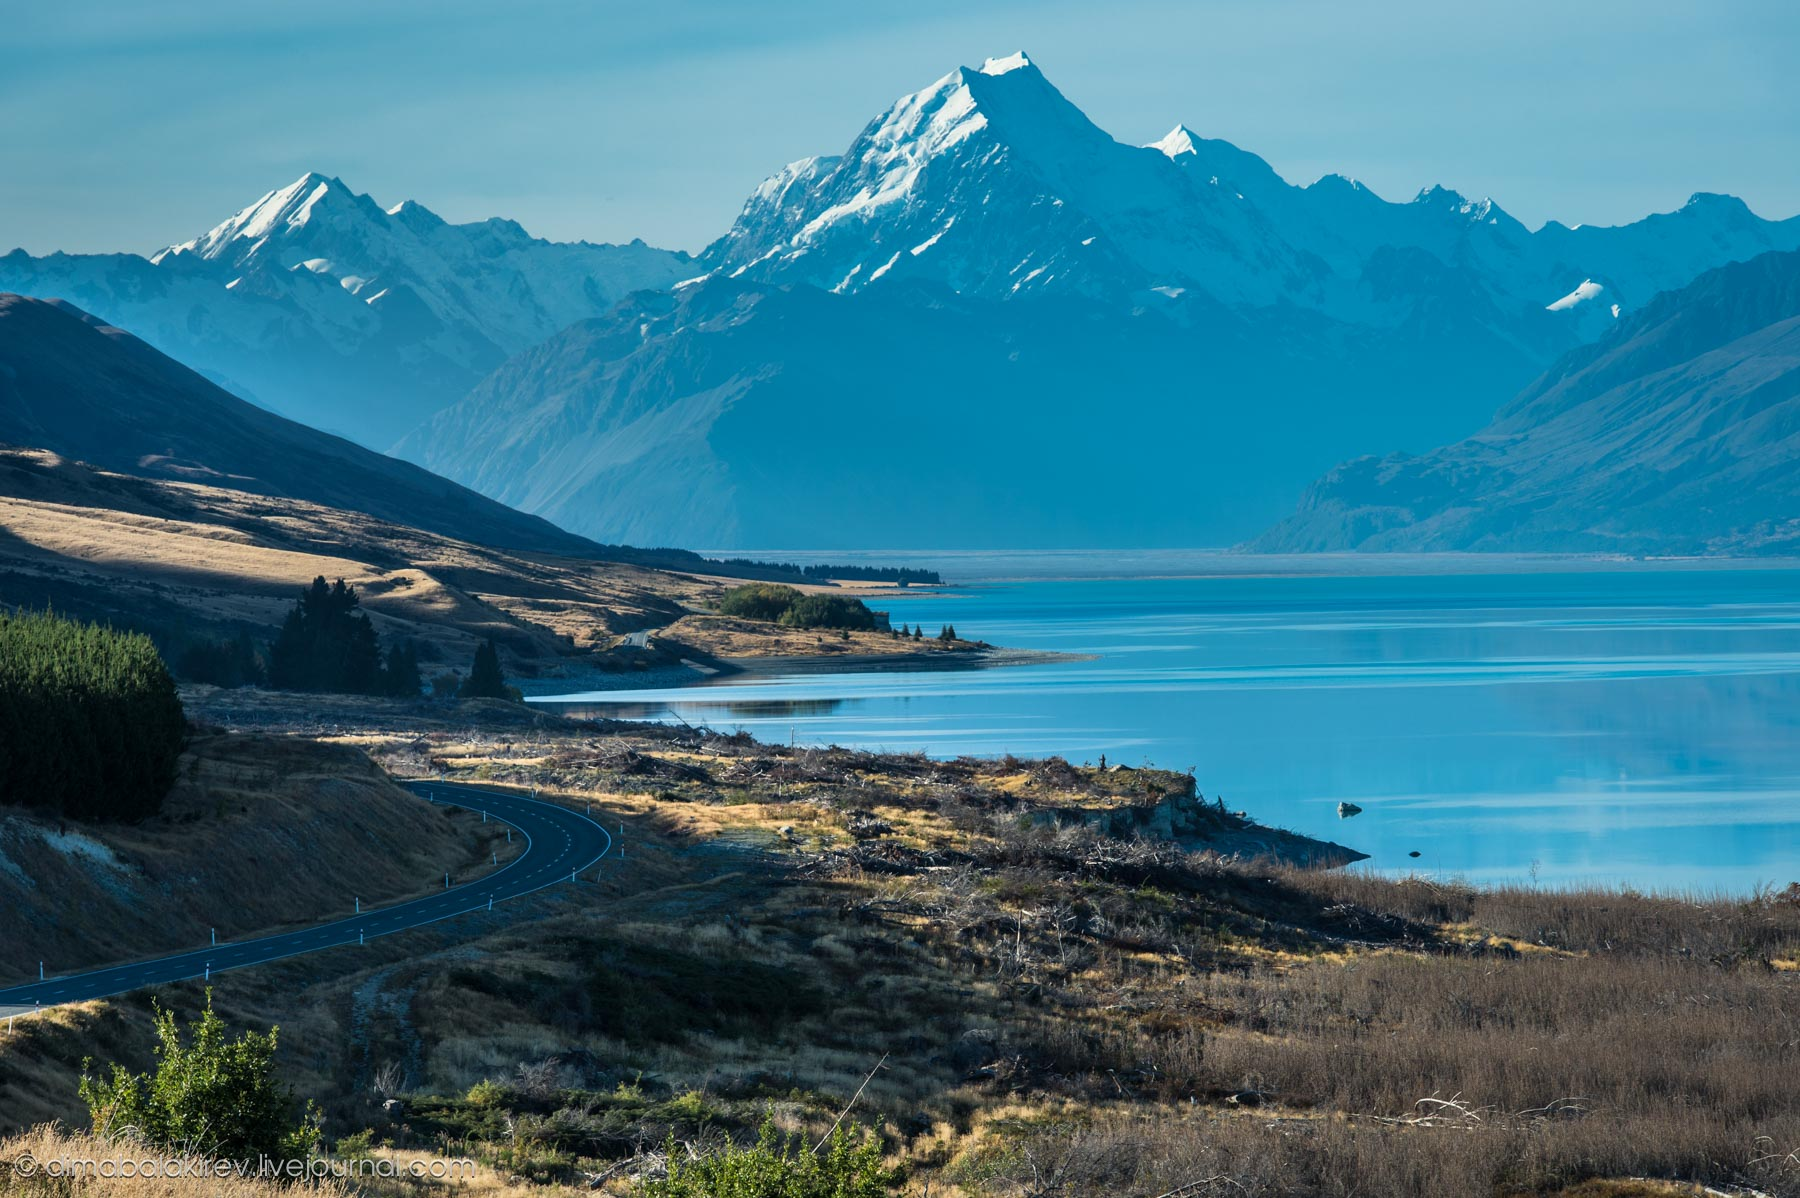 Sidelined_Landscape, Mt Cook, New Zealand бесплатно